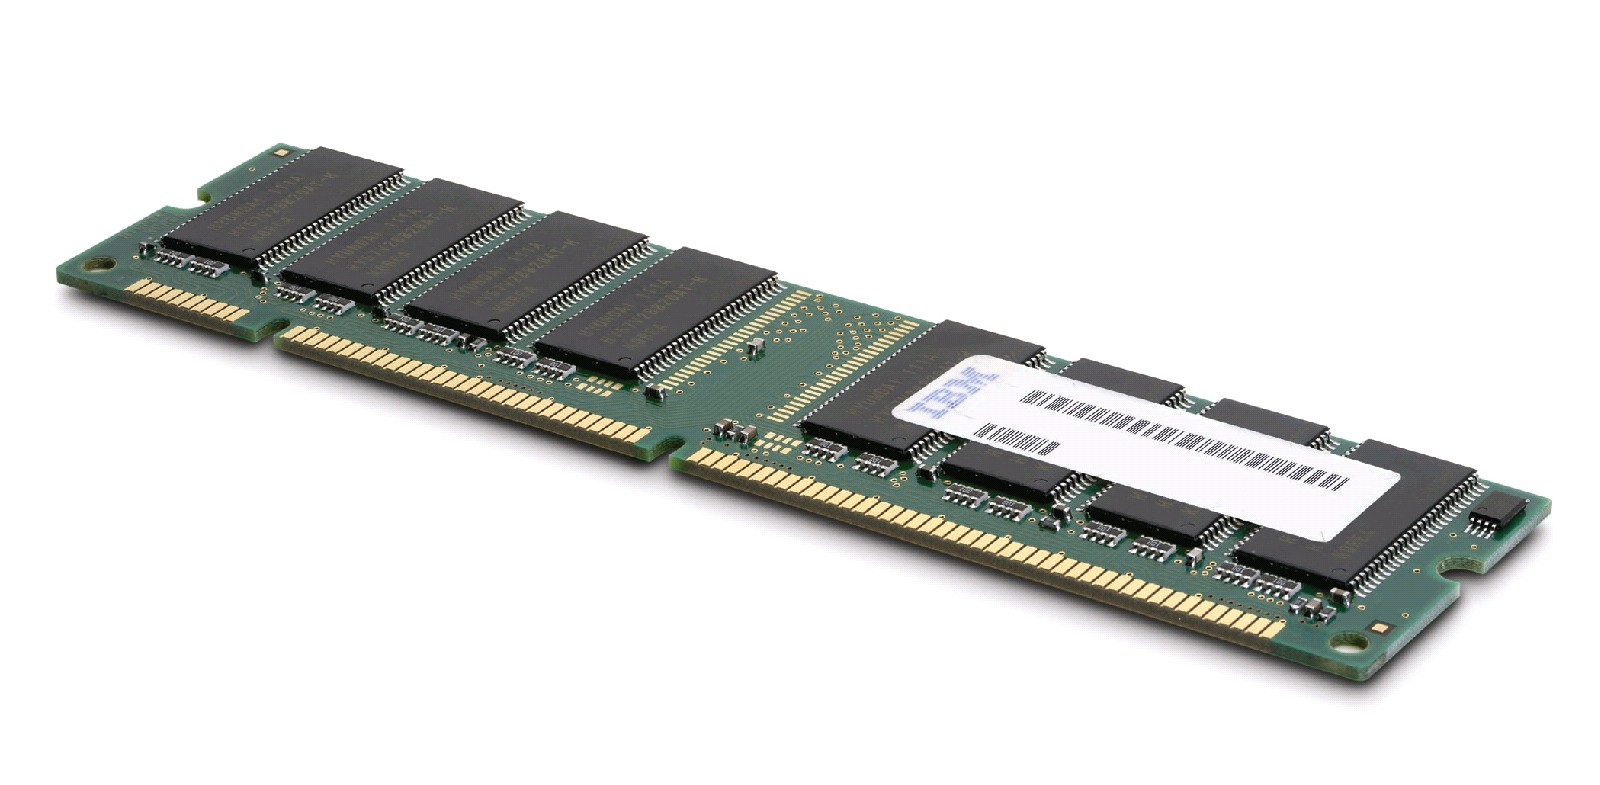 2Gb(1X2Gb)1333MHz PC3-10600 240-Pin Cl9 ECC Dual Rank 1.5V Registered DDR3 SDRAM RDIMM (49Y1433)